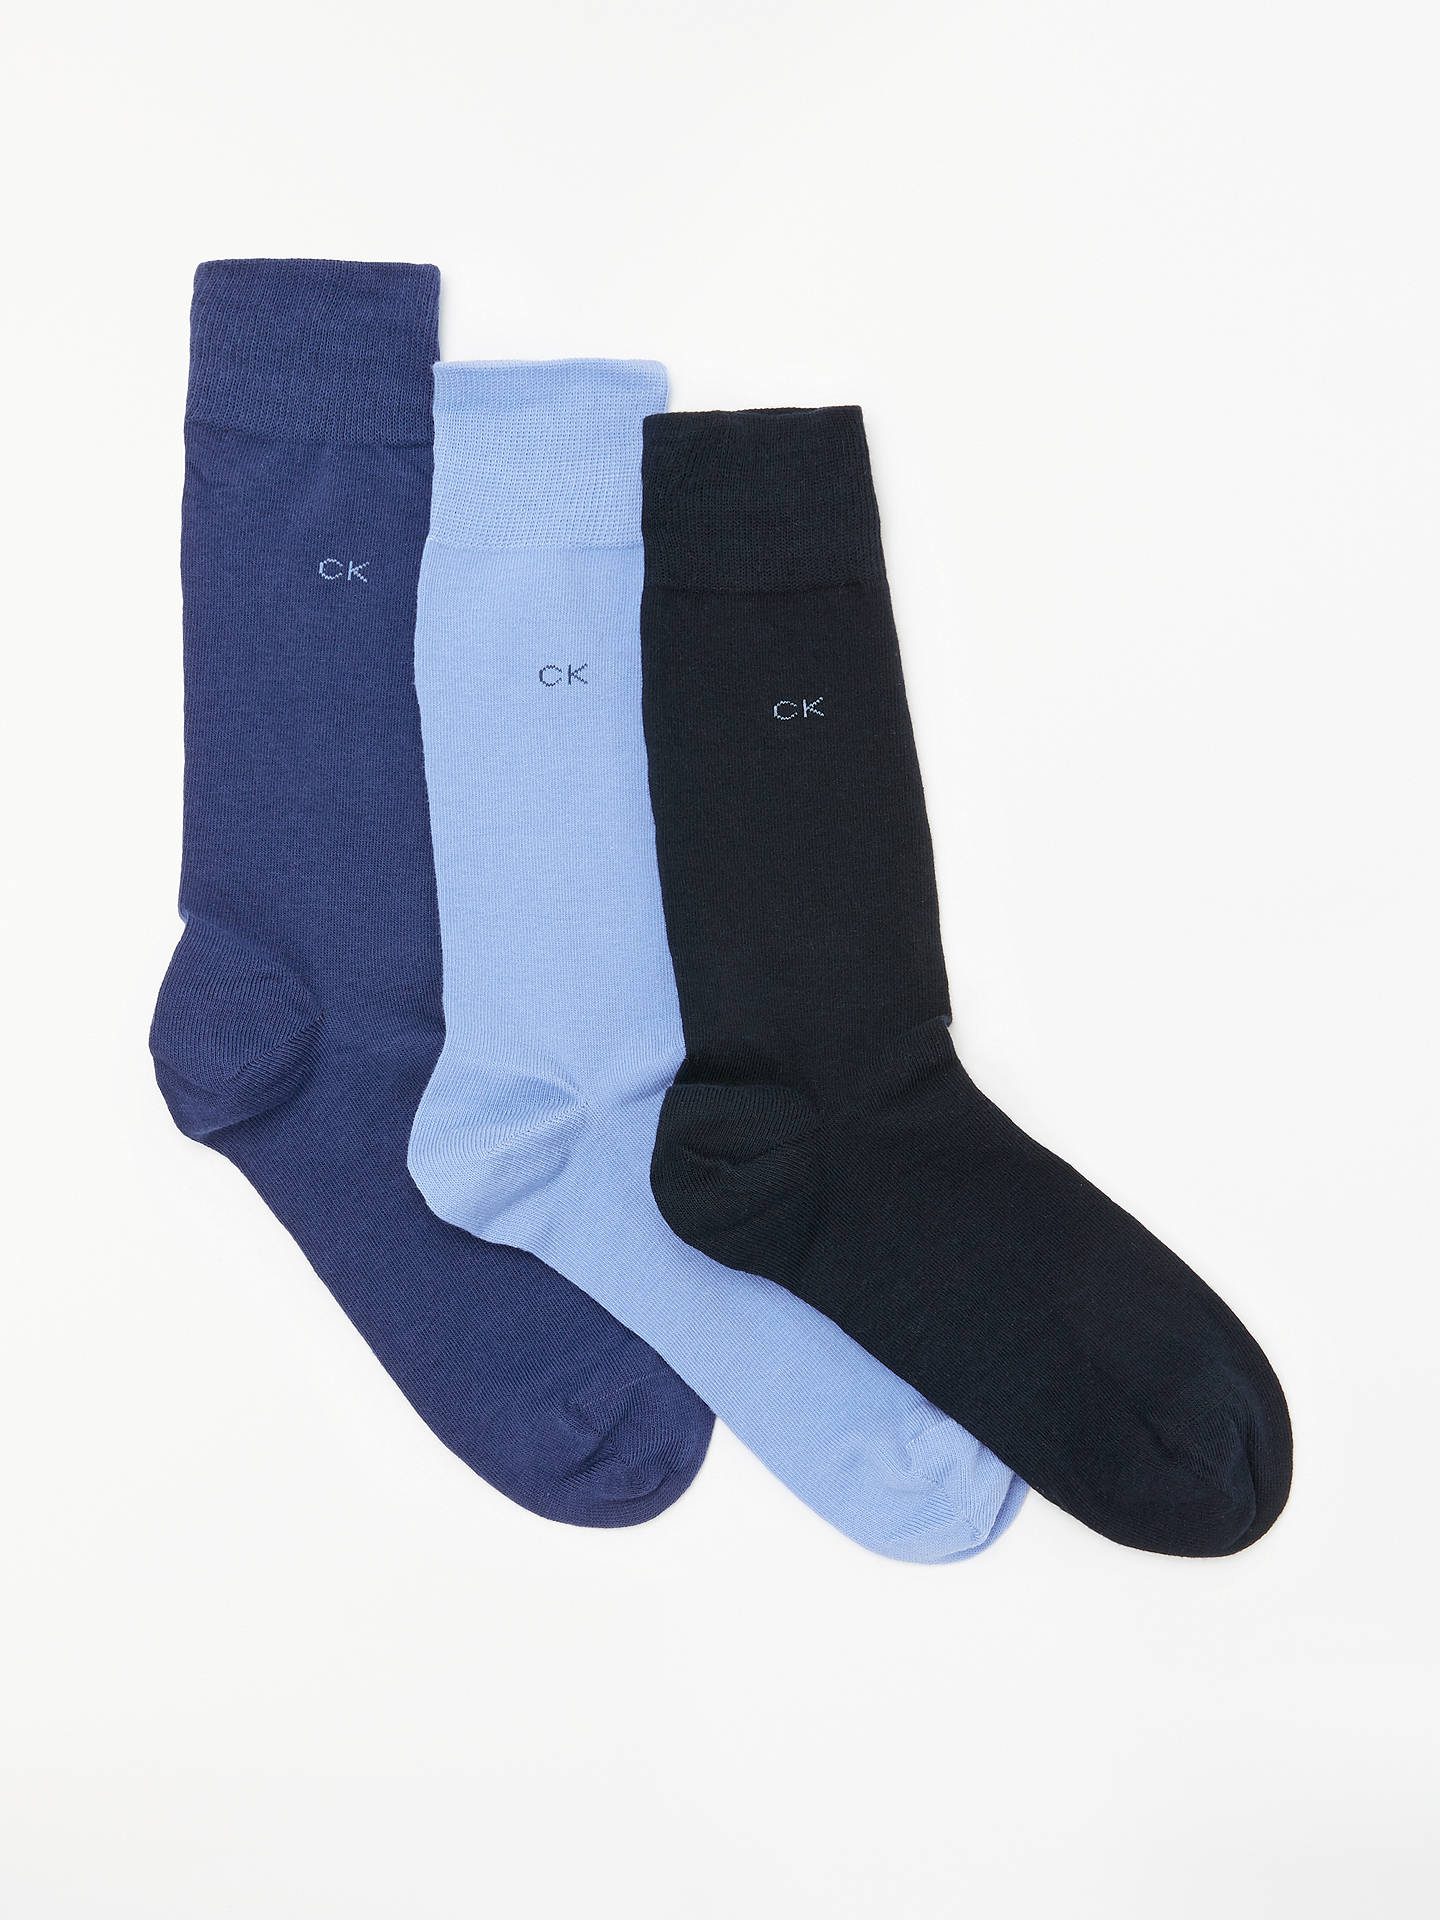 Buy Calvin Klein Fine Cotton Socks, Pack of 3, One Size, Blues Online at johnlewis.com